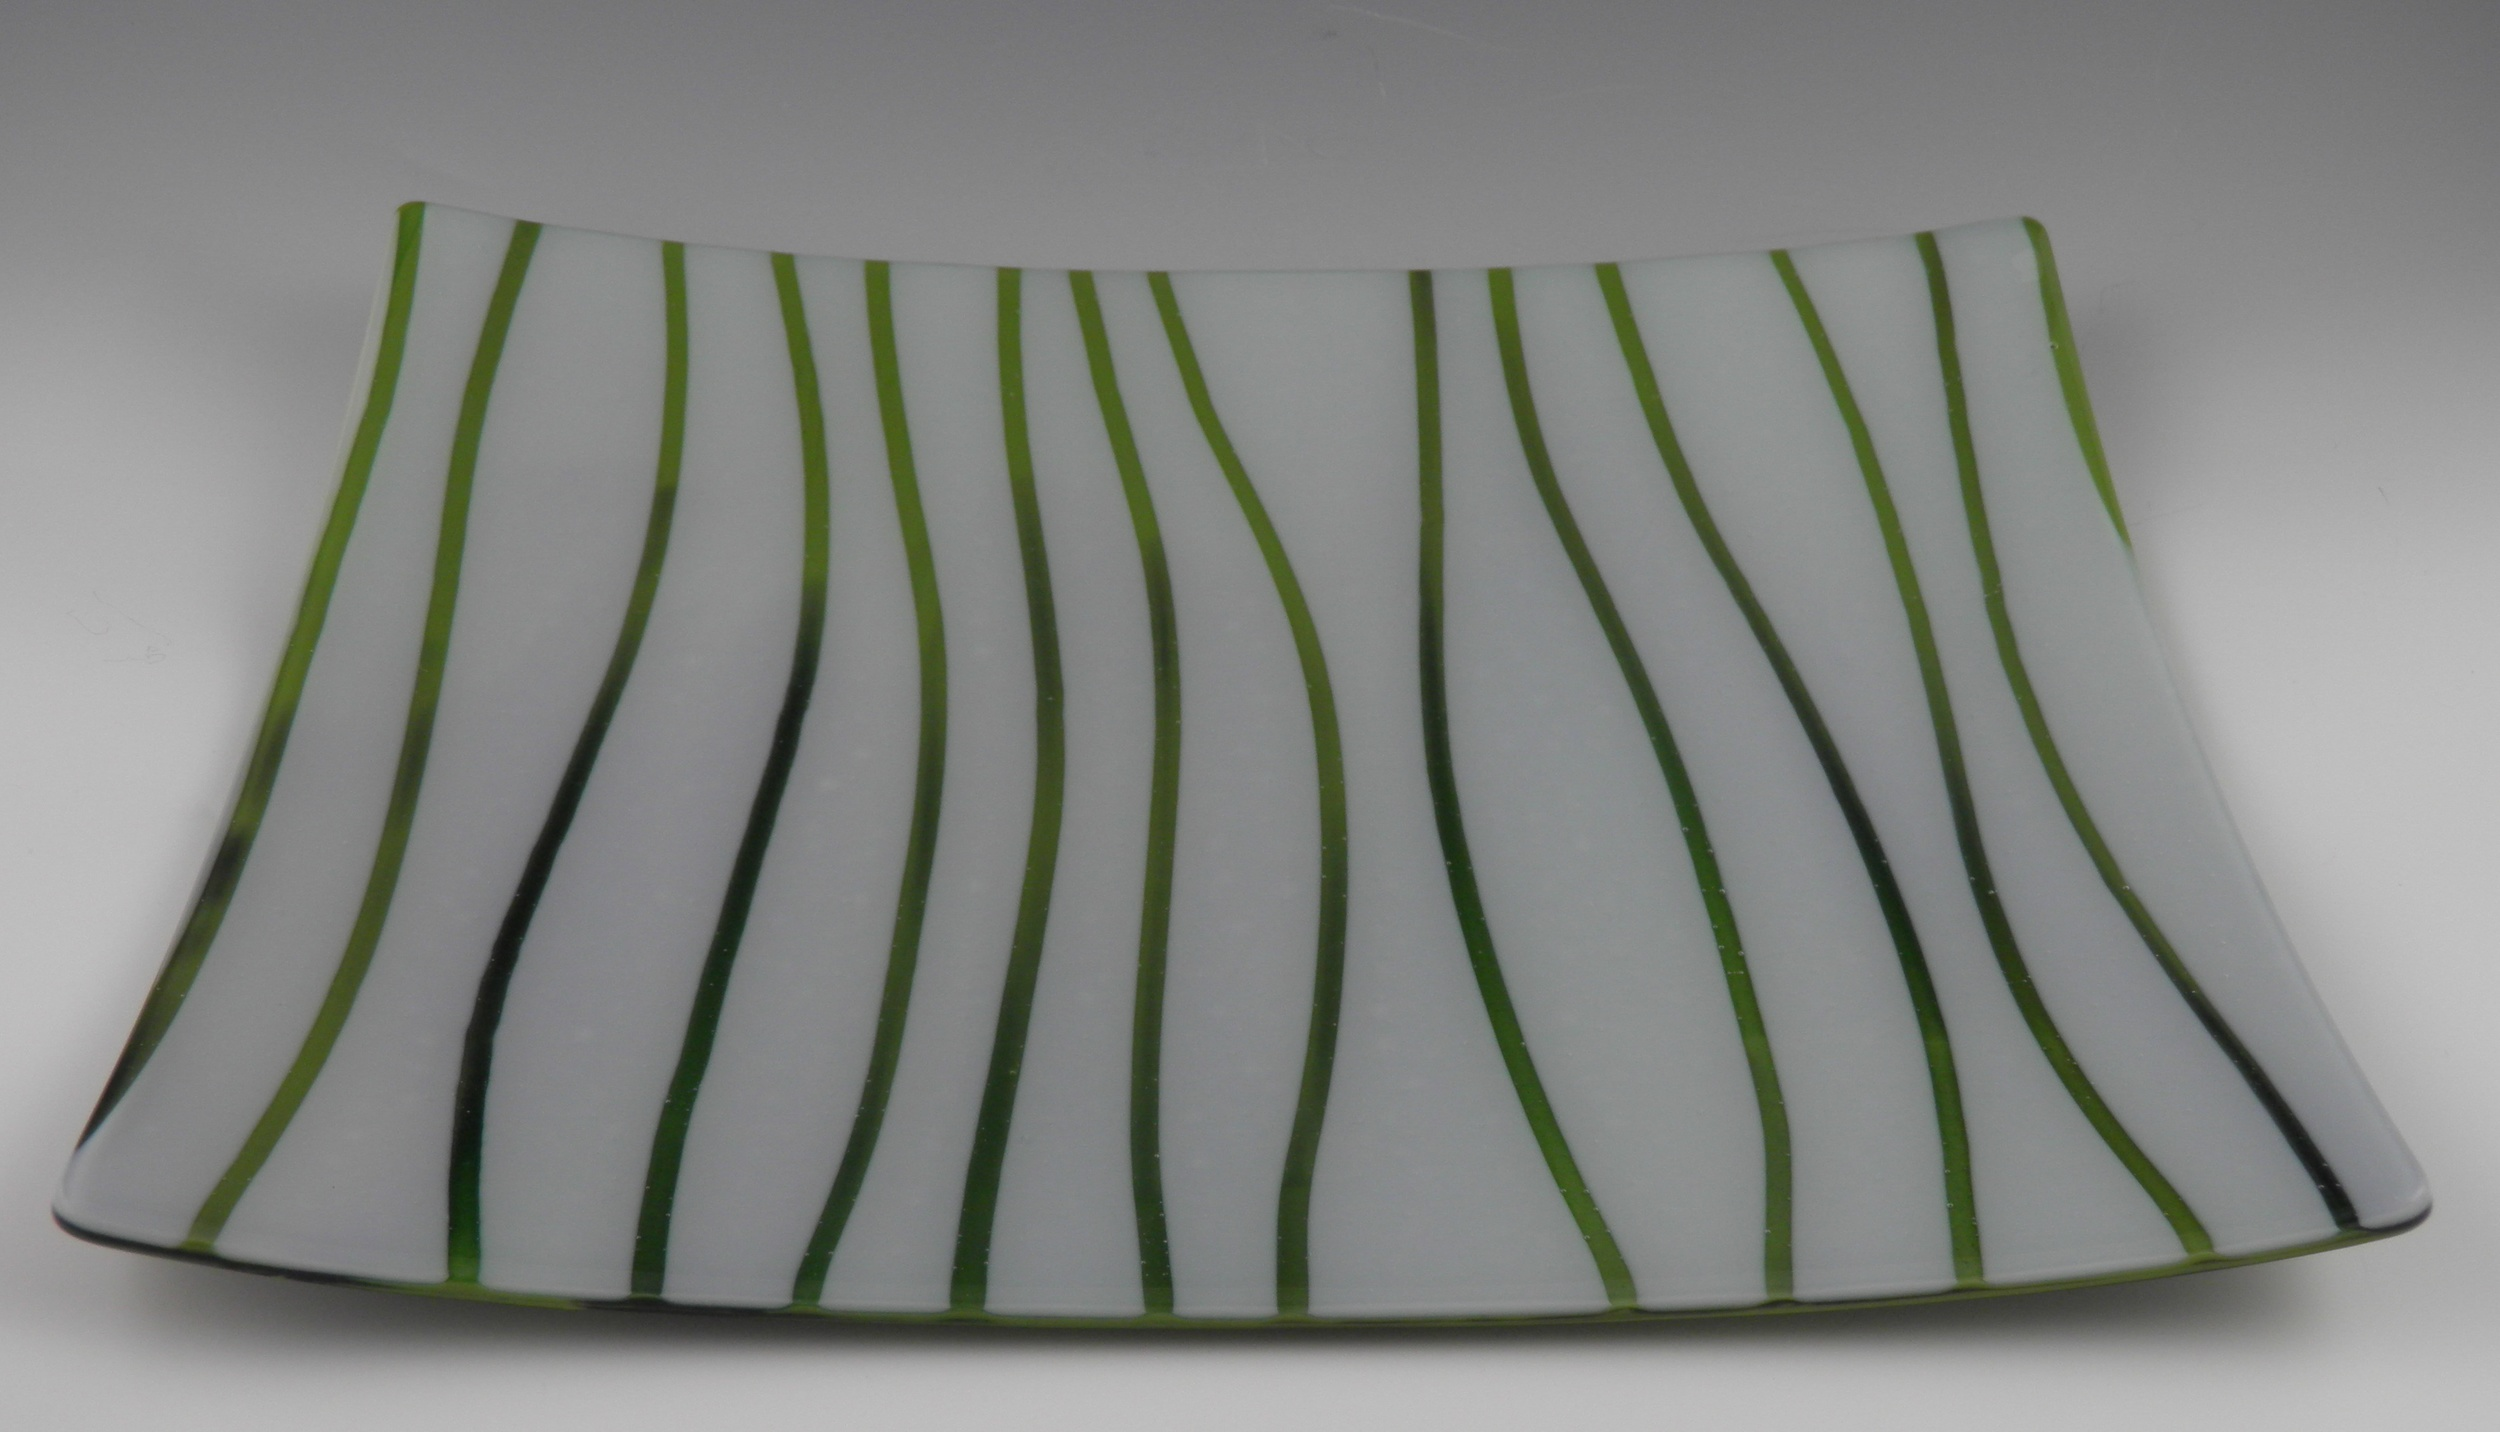 green grass on white platter